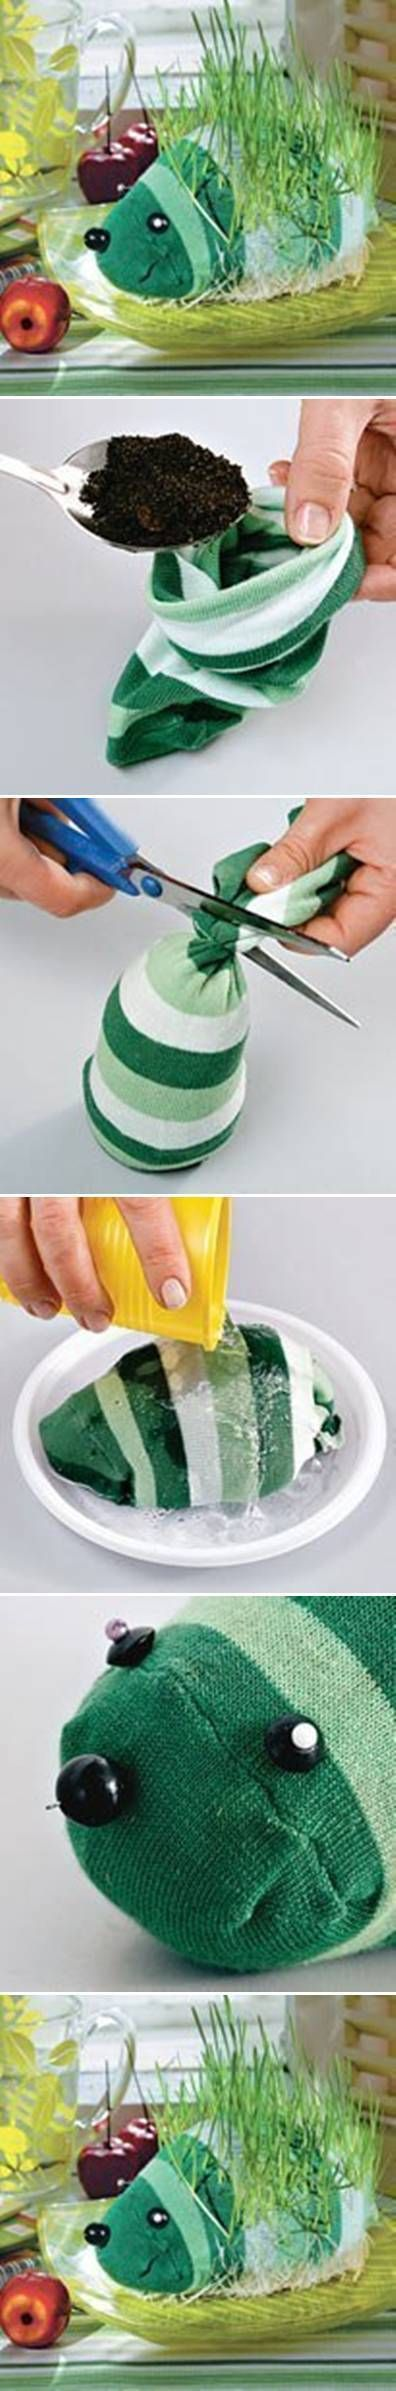 DIY Sock Growing Grass Hedgehog DIY Projects | UsefulDIY.com Follow Us on Facebook --> https://www.facebook.com/UsefulDiy